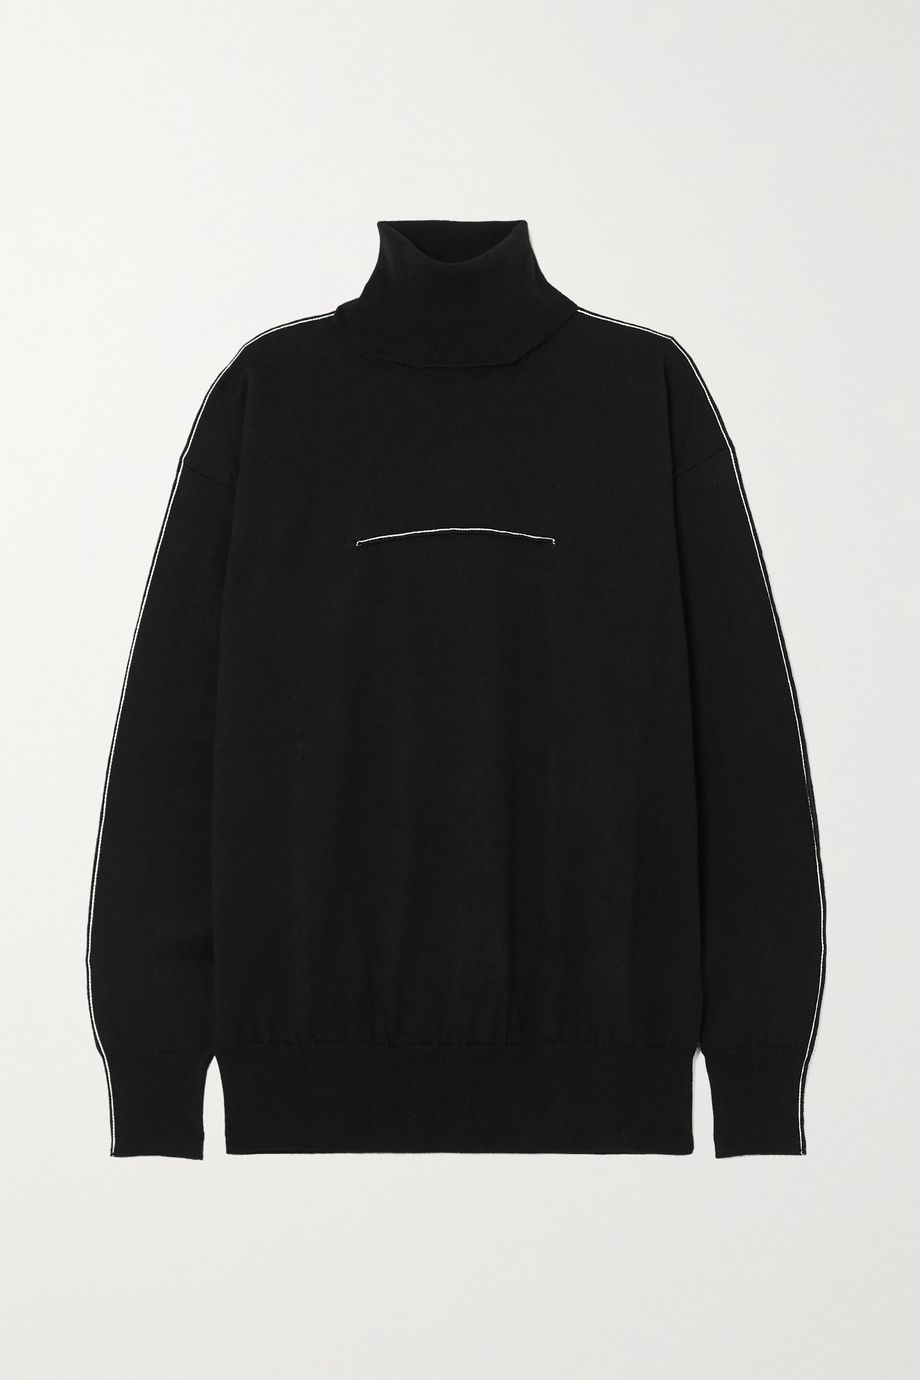 MM6 Maison Margiela Embroidered cotton and cashmere-blend turtleneck sweater